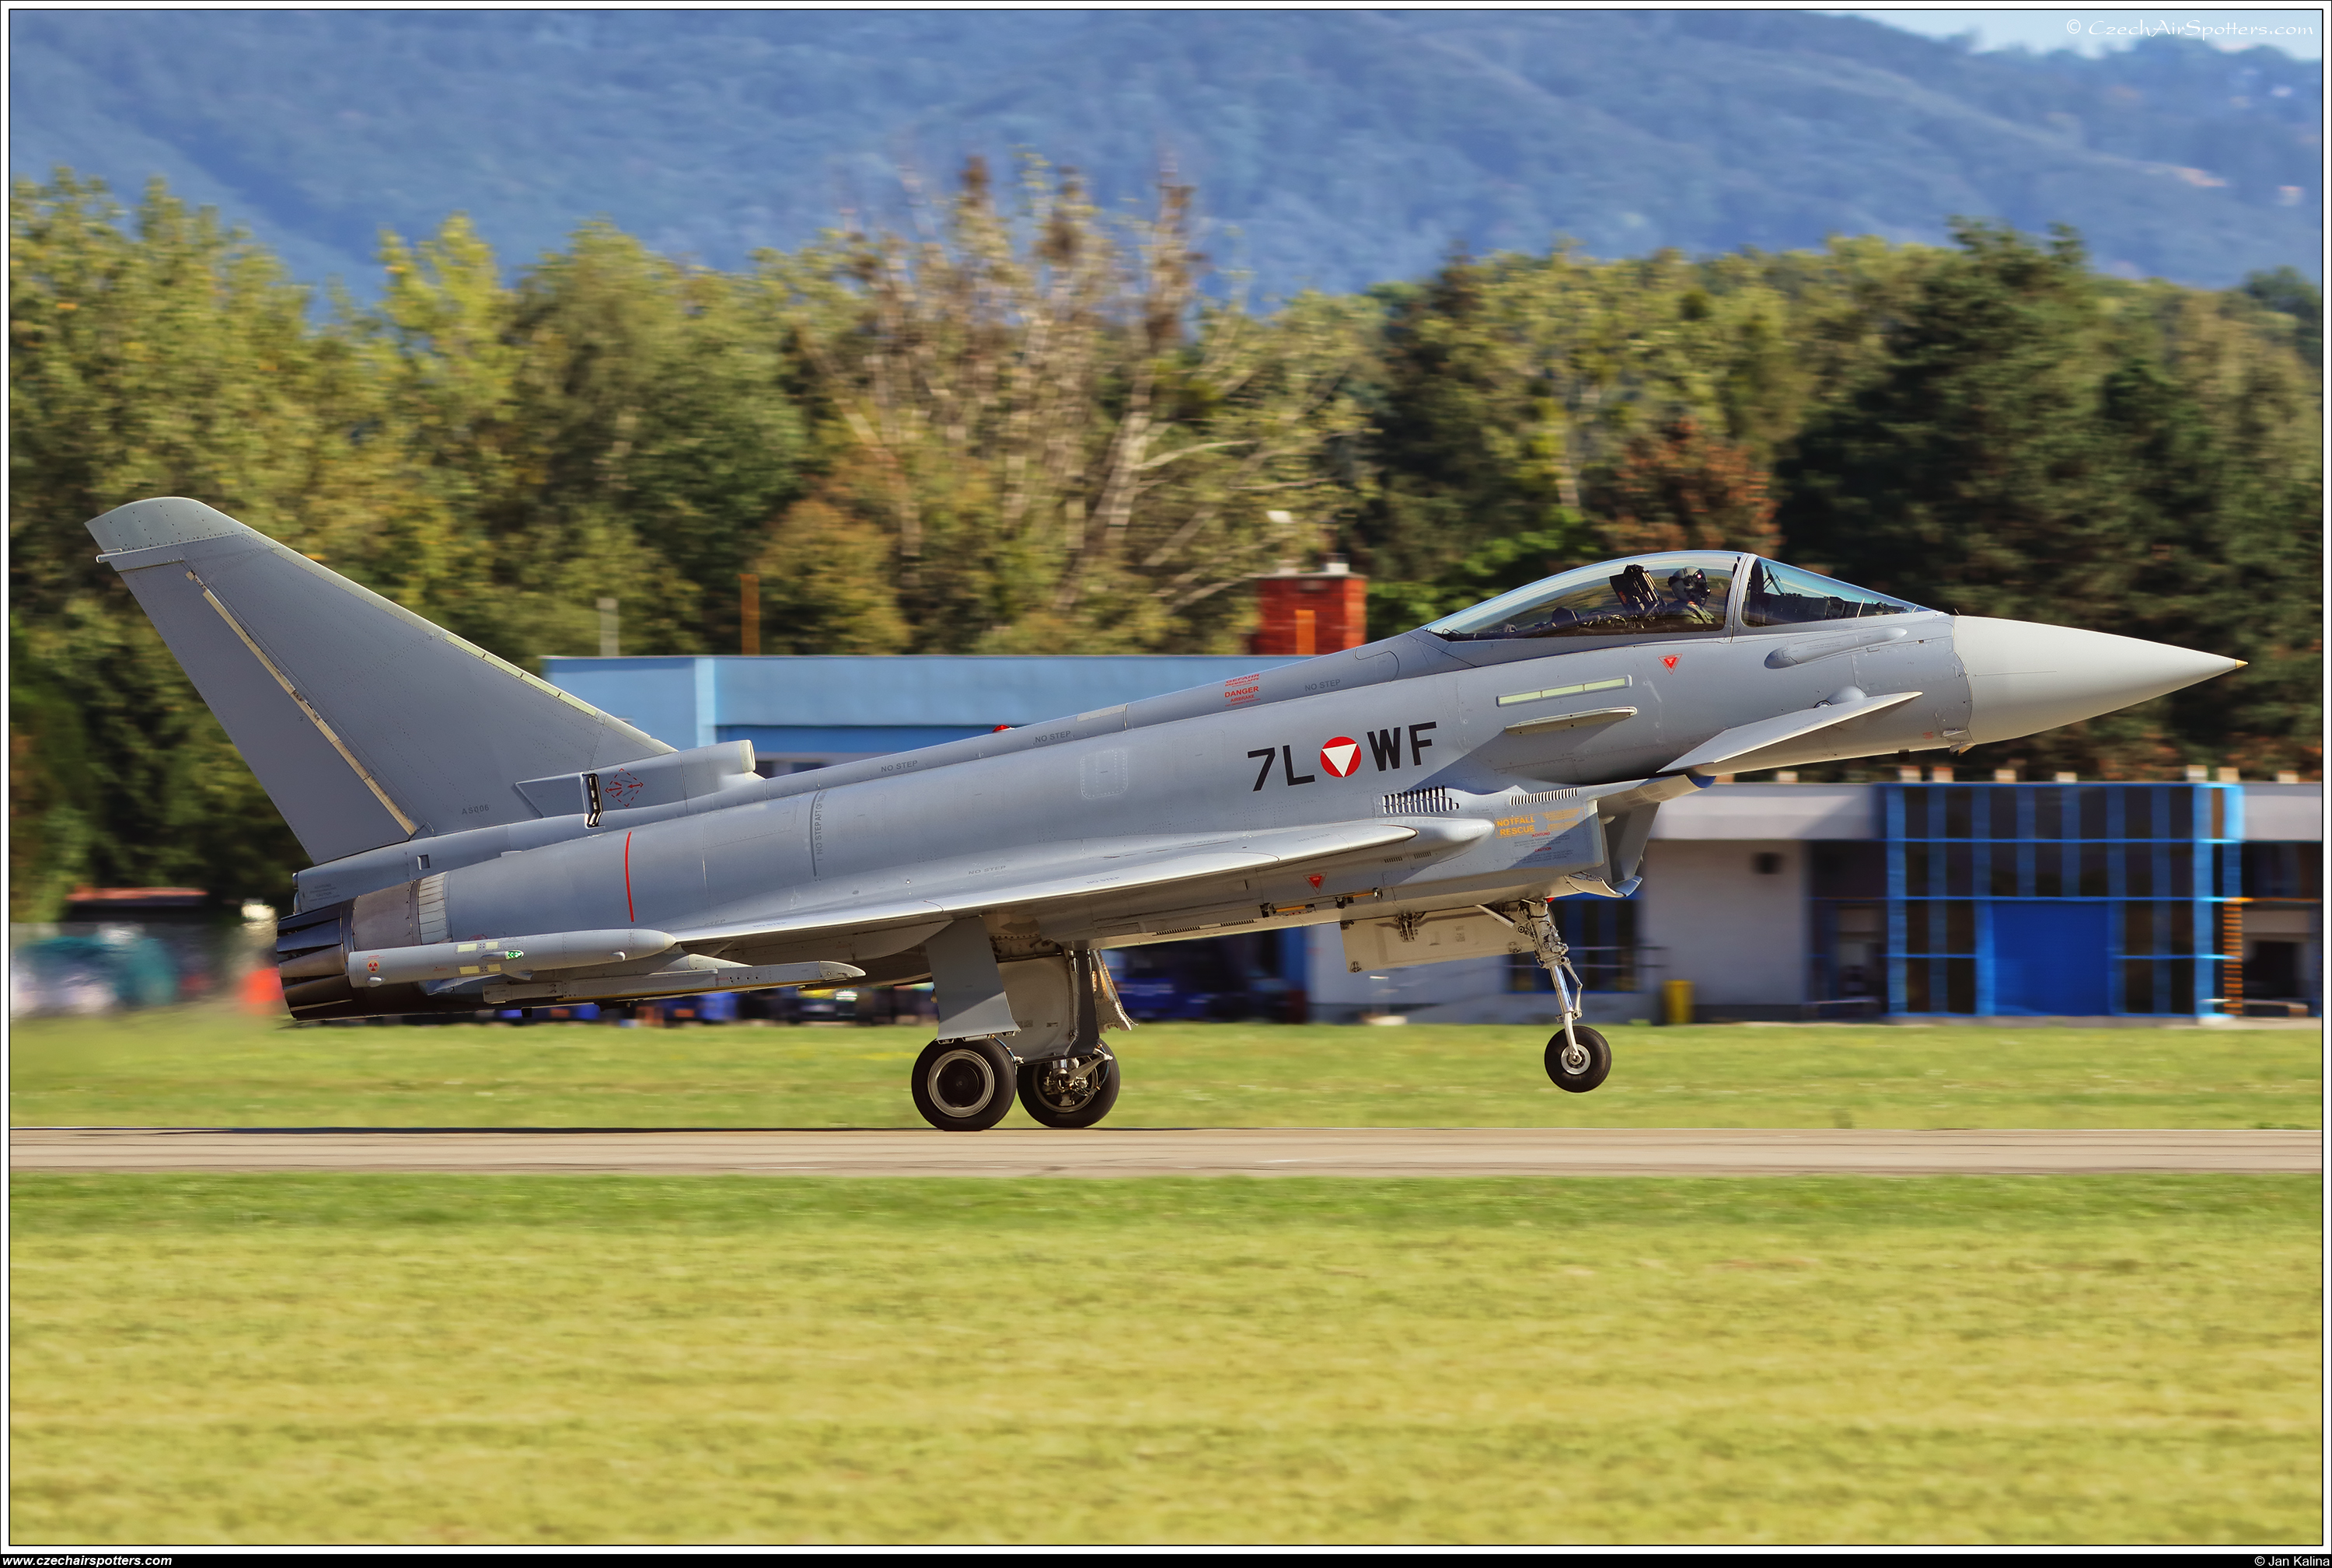 Austria - Air Force – Eurofighter EF-2000 Typhoon S 7L-WF